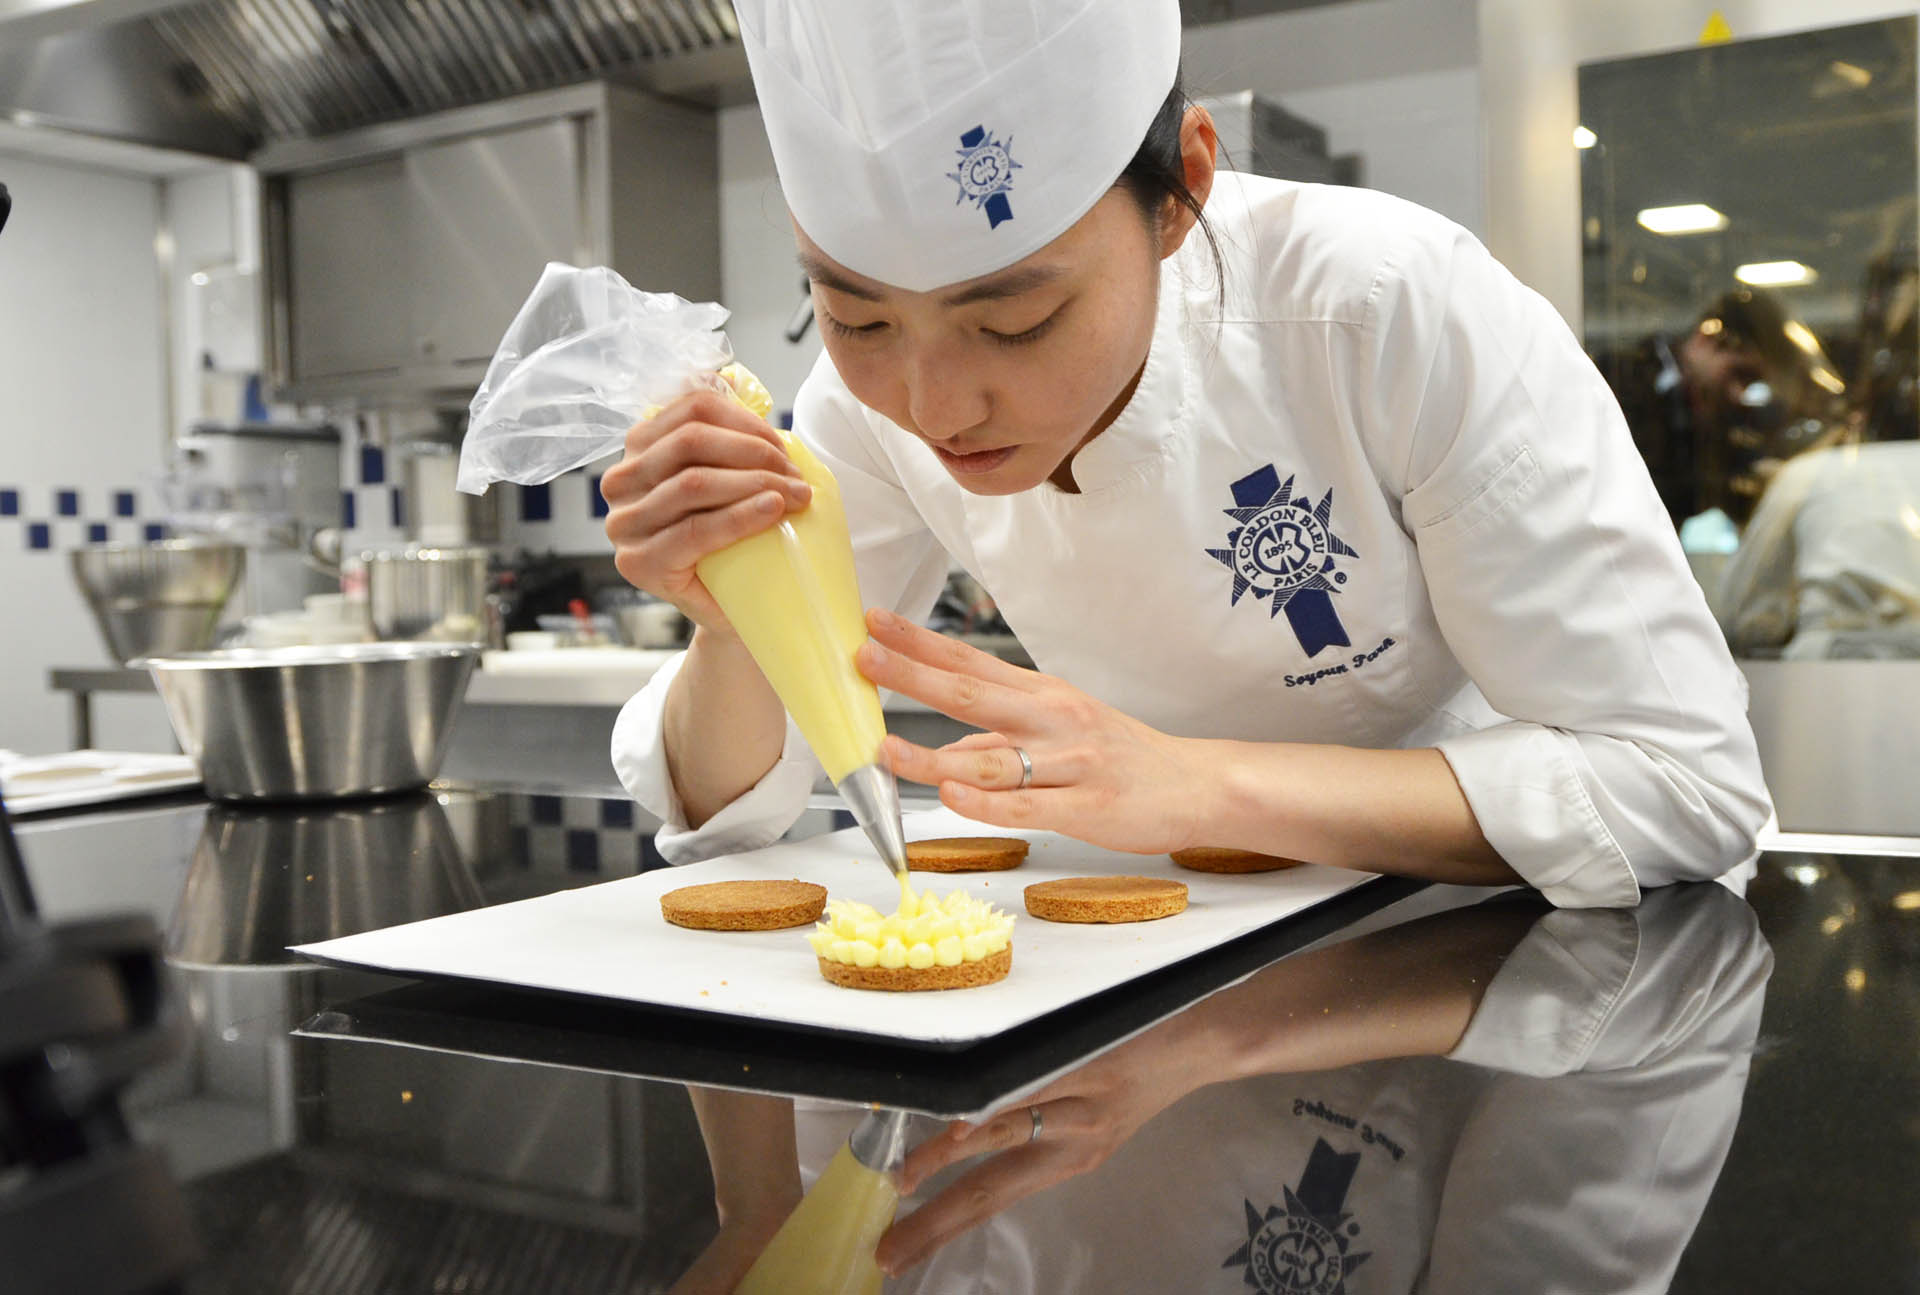 Chef Soyoun Park, pastry chef